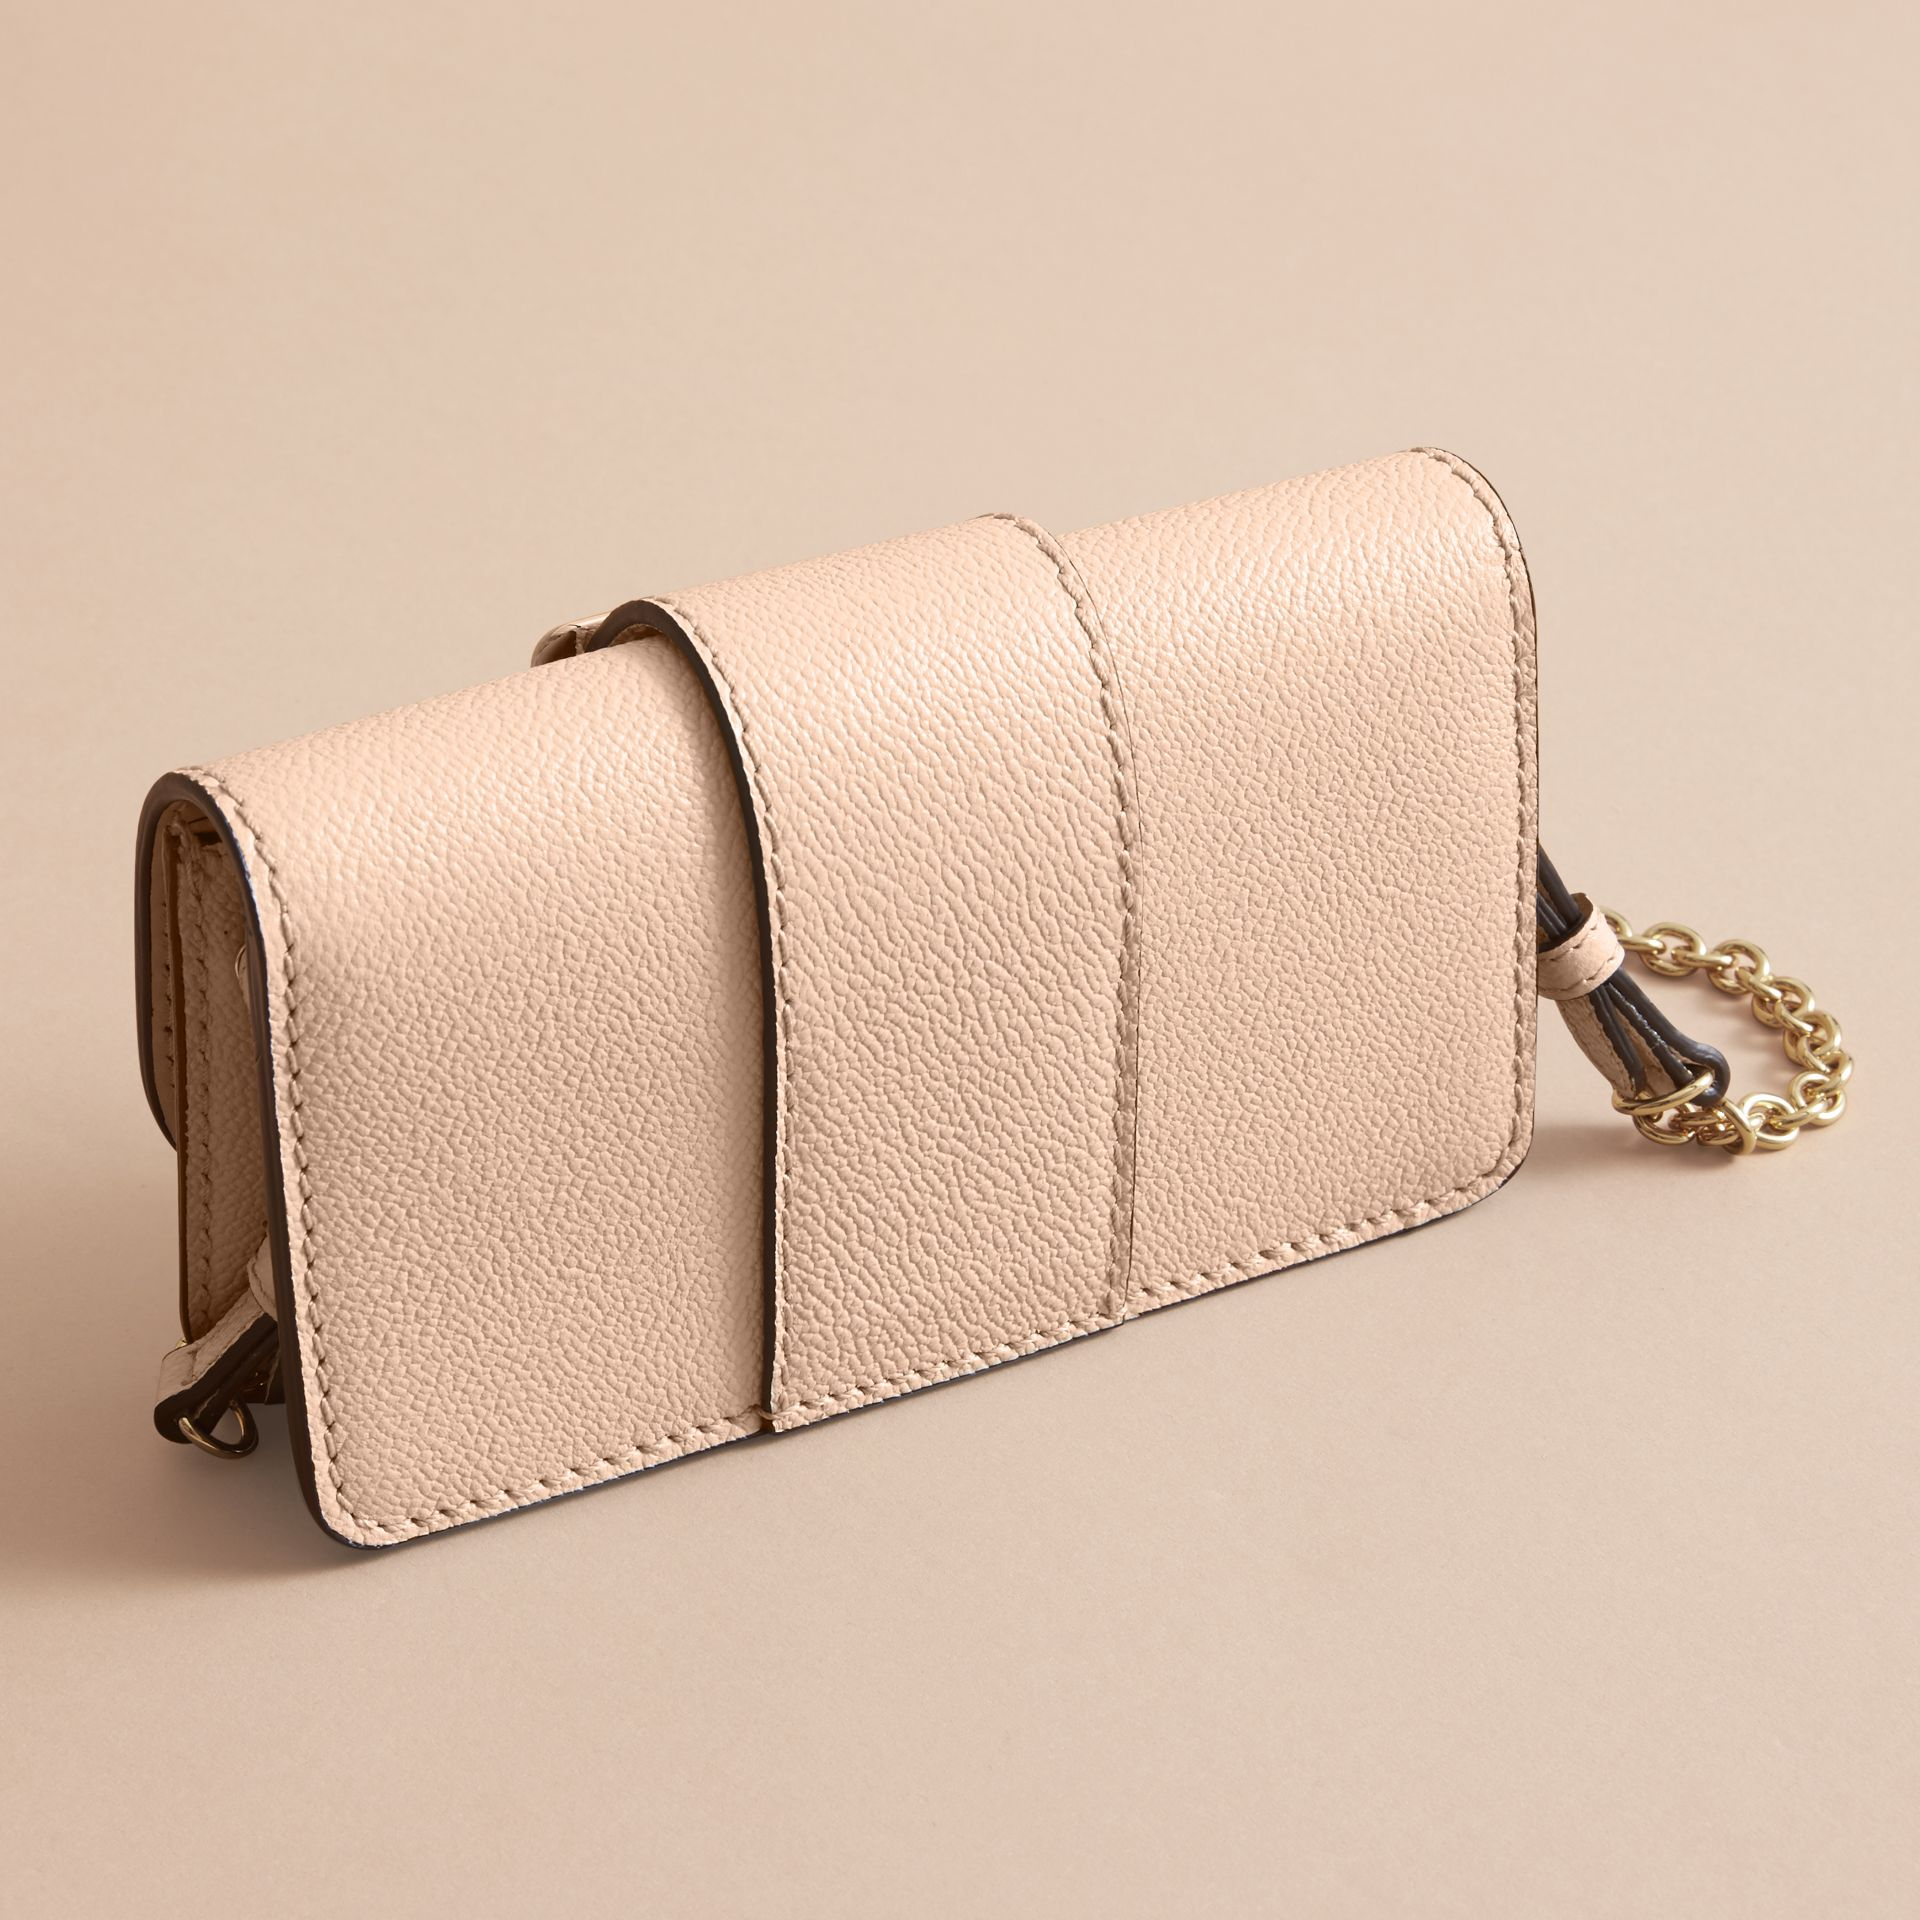 The Mini Buckle Bag in Grainy Leather in Limestone - Women | Burberry Australia - gallery image 5